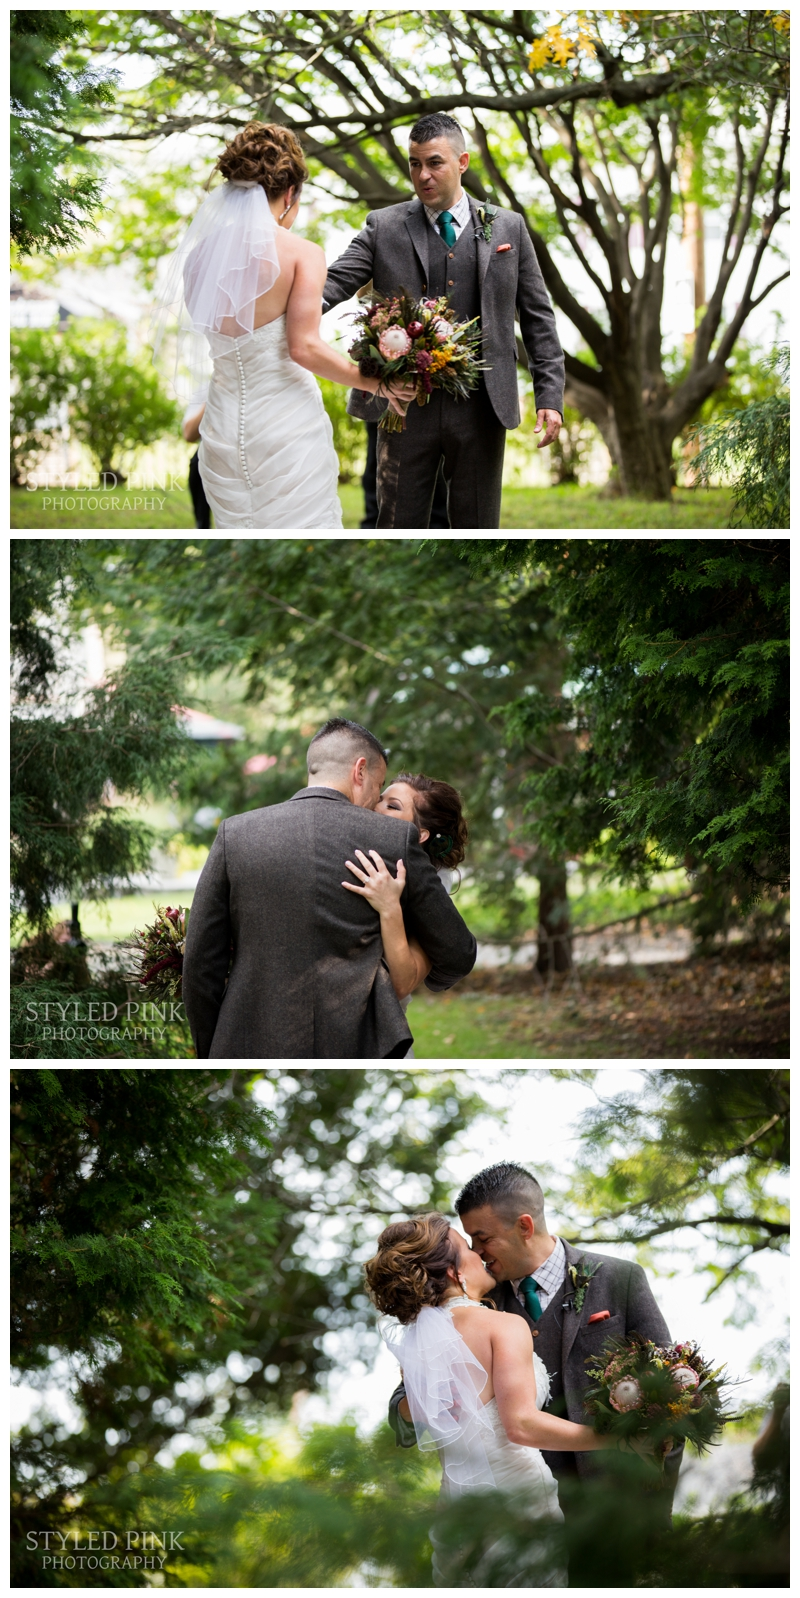 styled-pink-photography-knowlton-mansion-wedding-27